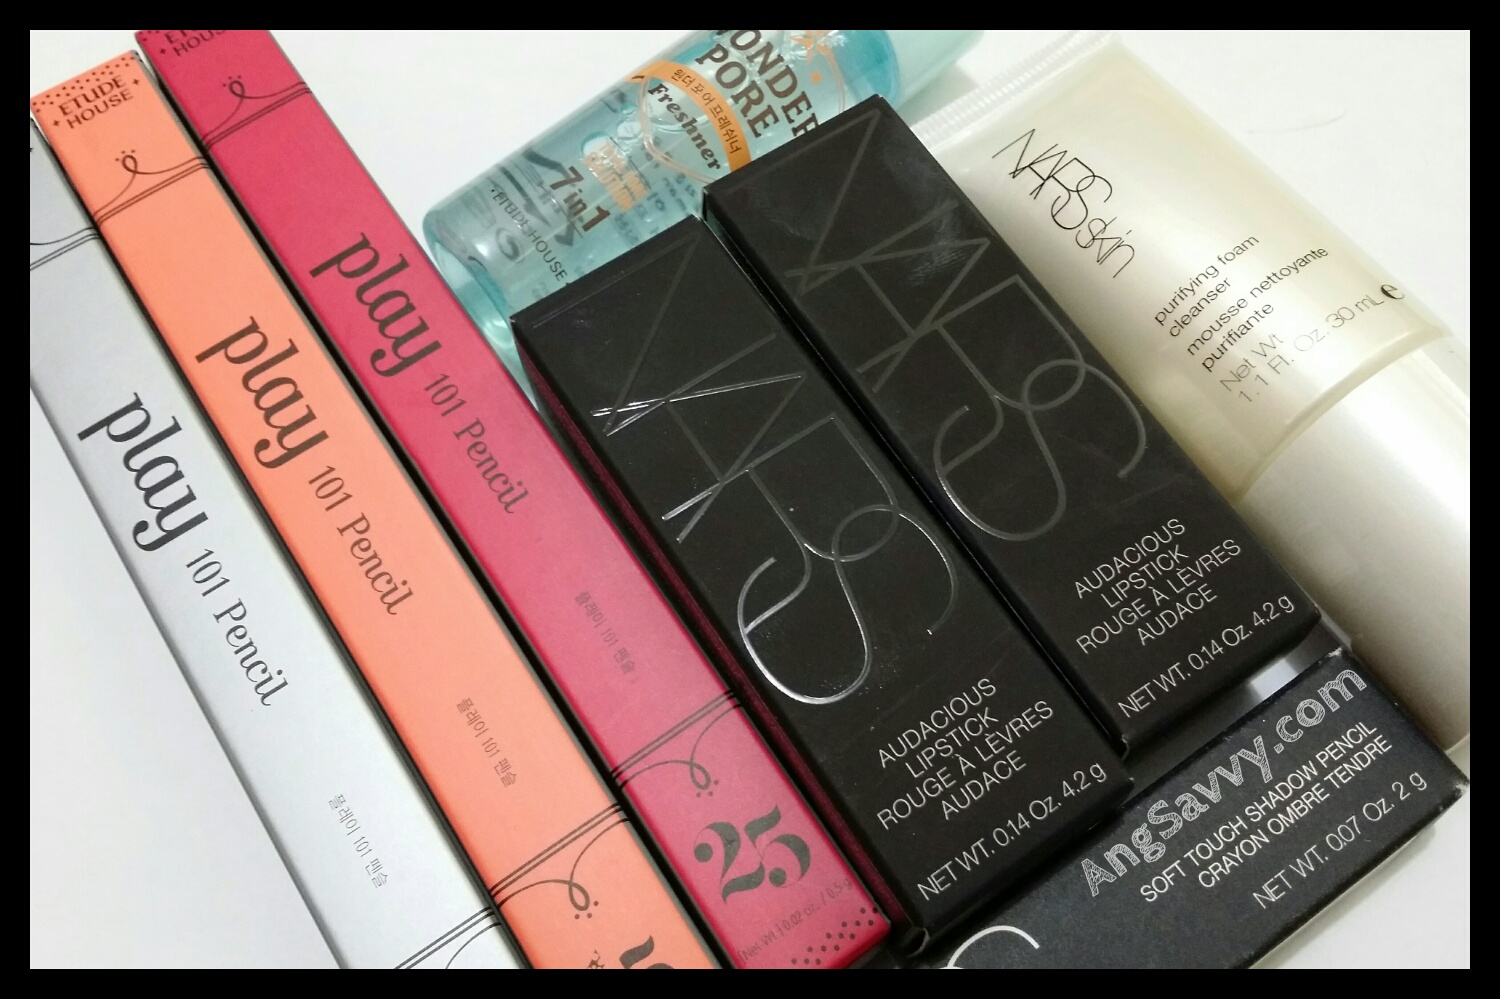 NARS audacious lipstick and Etude House makeup haul